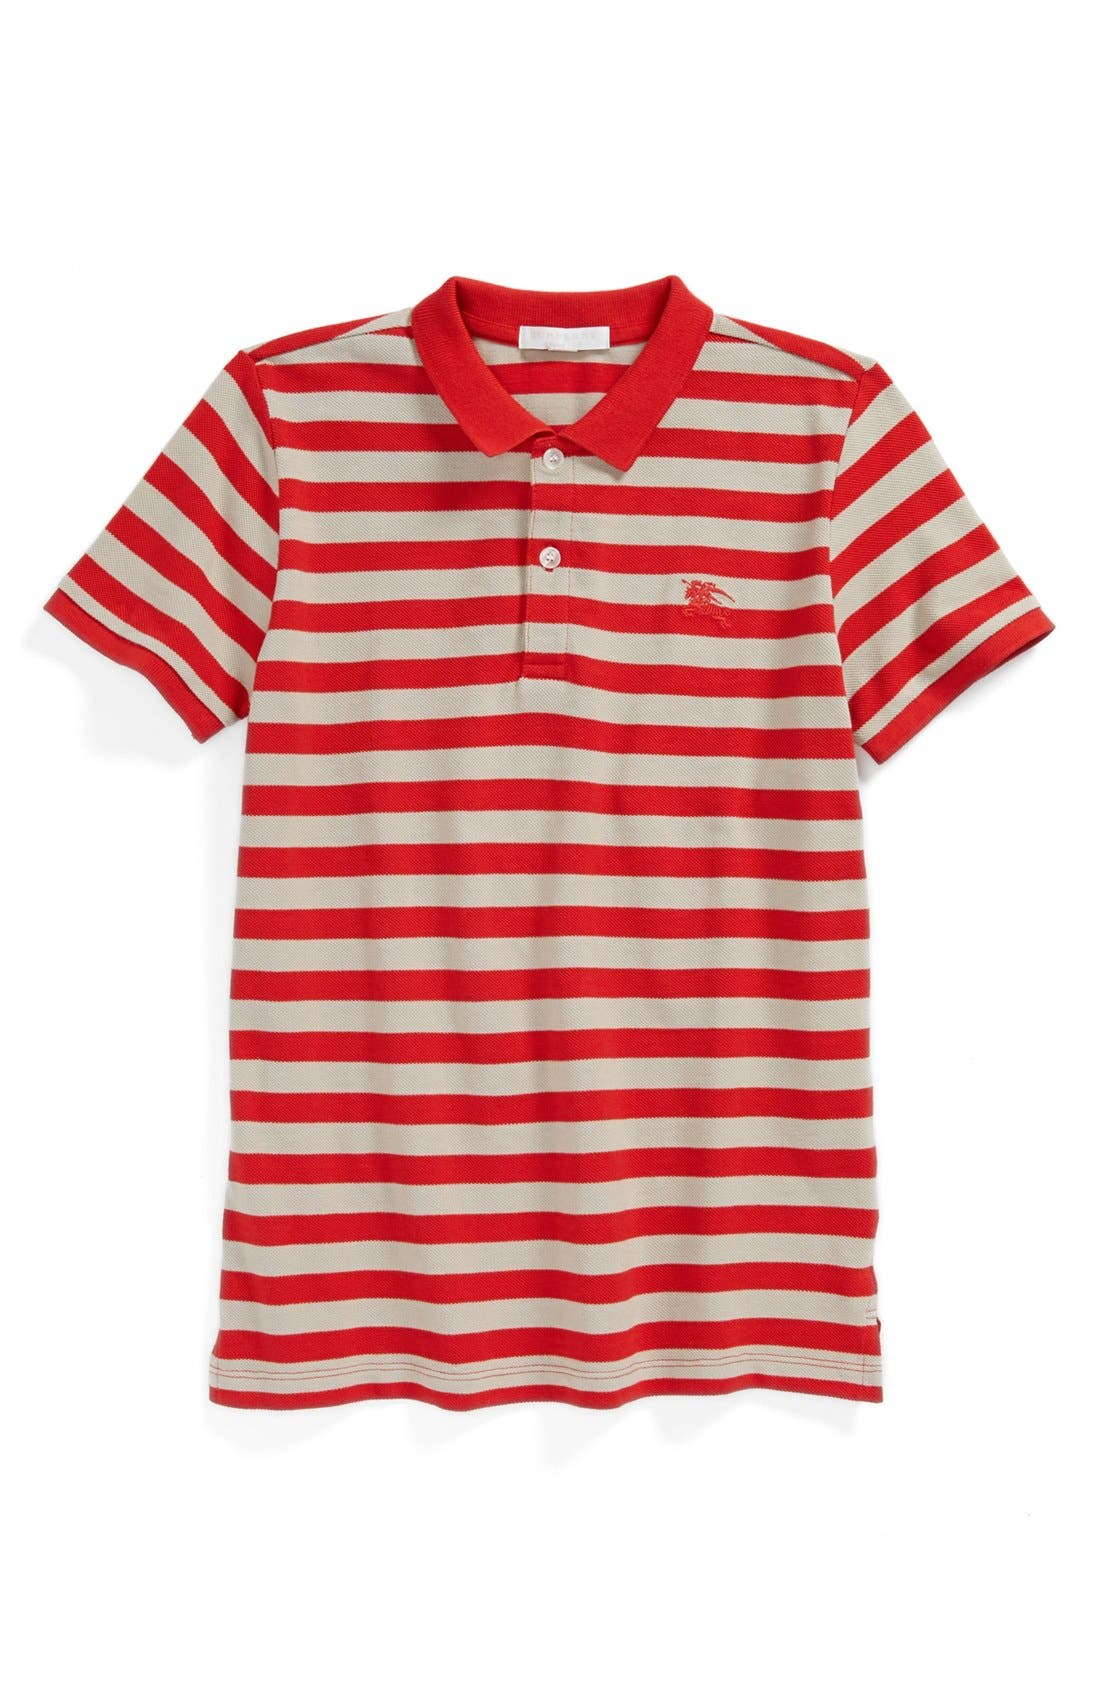 Alternate Image 1 Selected - Burberry Stripe Cotton Polo (Toddler Boys)